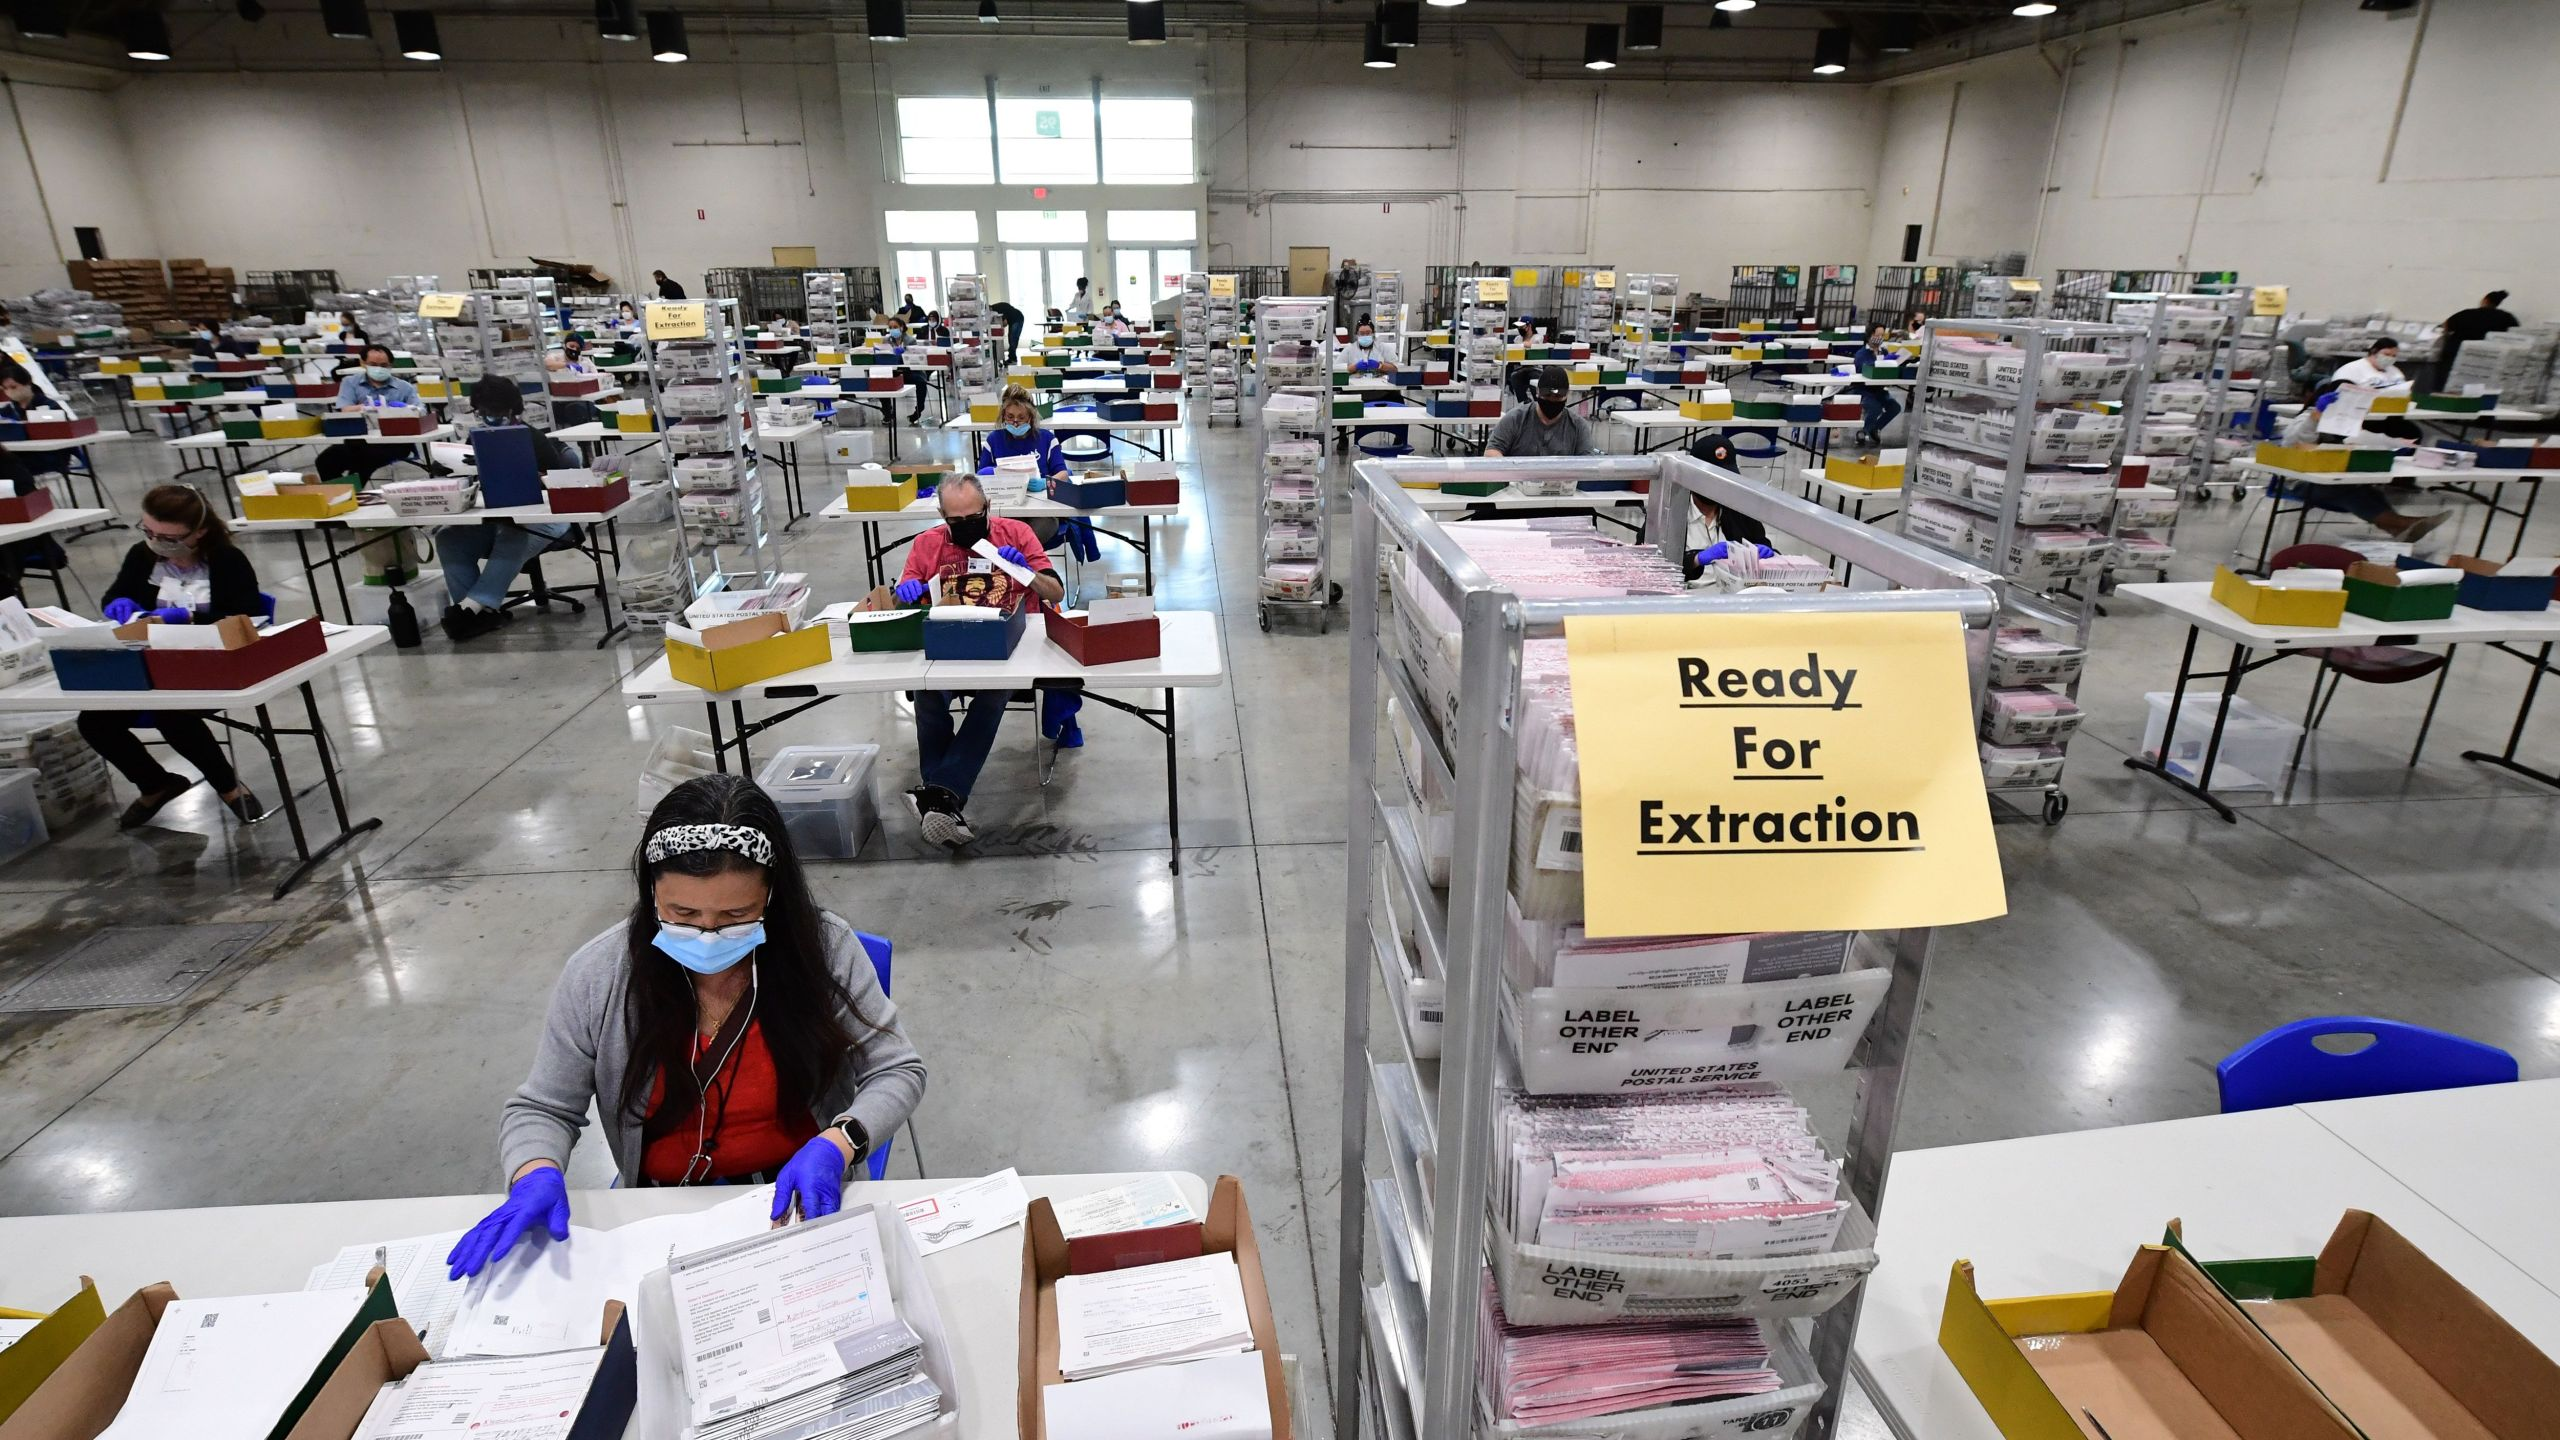 Election workers extract mail-in ballots from their envelopes and examine the ballot for irregularities at the Los Angeles County Registrar Recorders' mail-in ballot processing center at the Pomona Fairplex in Pomona on Oct. 28, 2020. (ROBYN BECK/AFP via Getty Images)